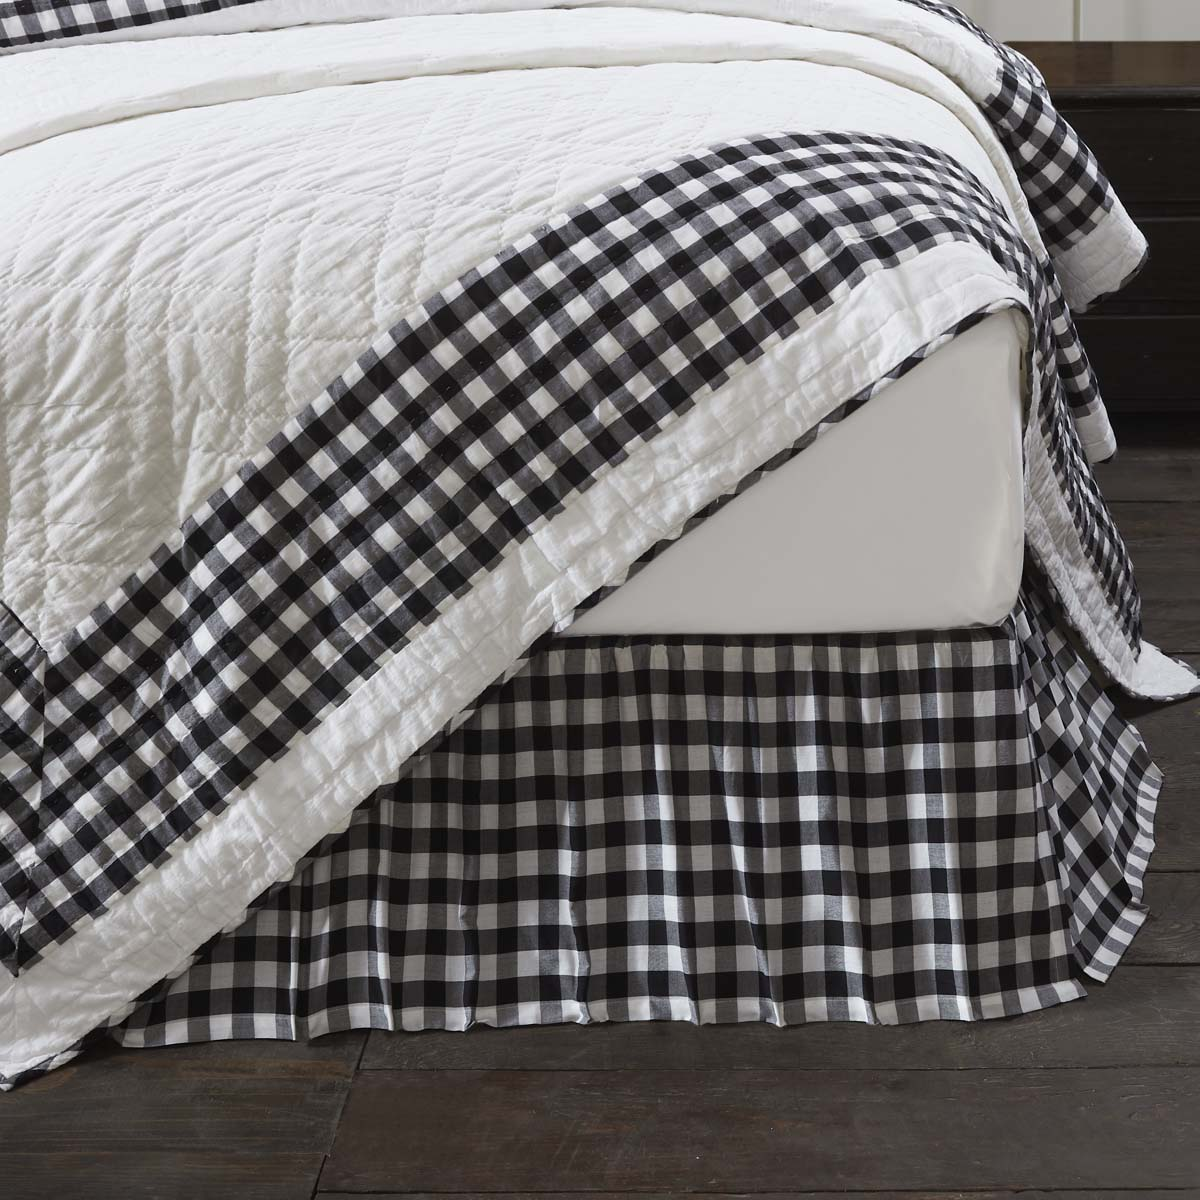 Annie Buffalo Black Check Twin Bed Skirt 39x76x16